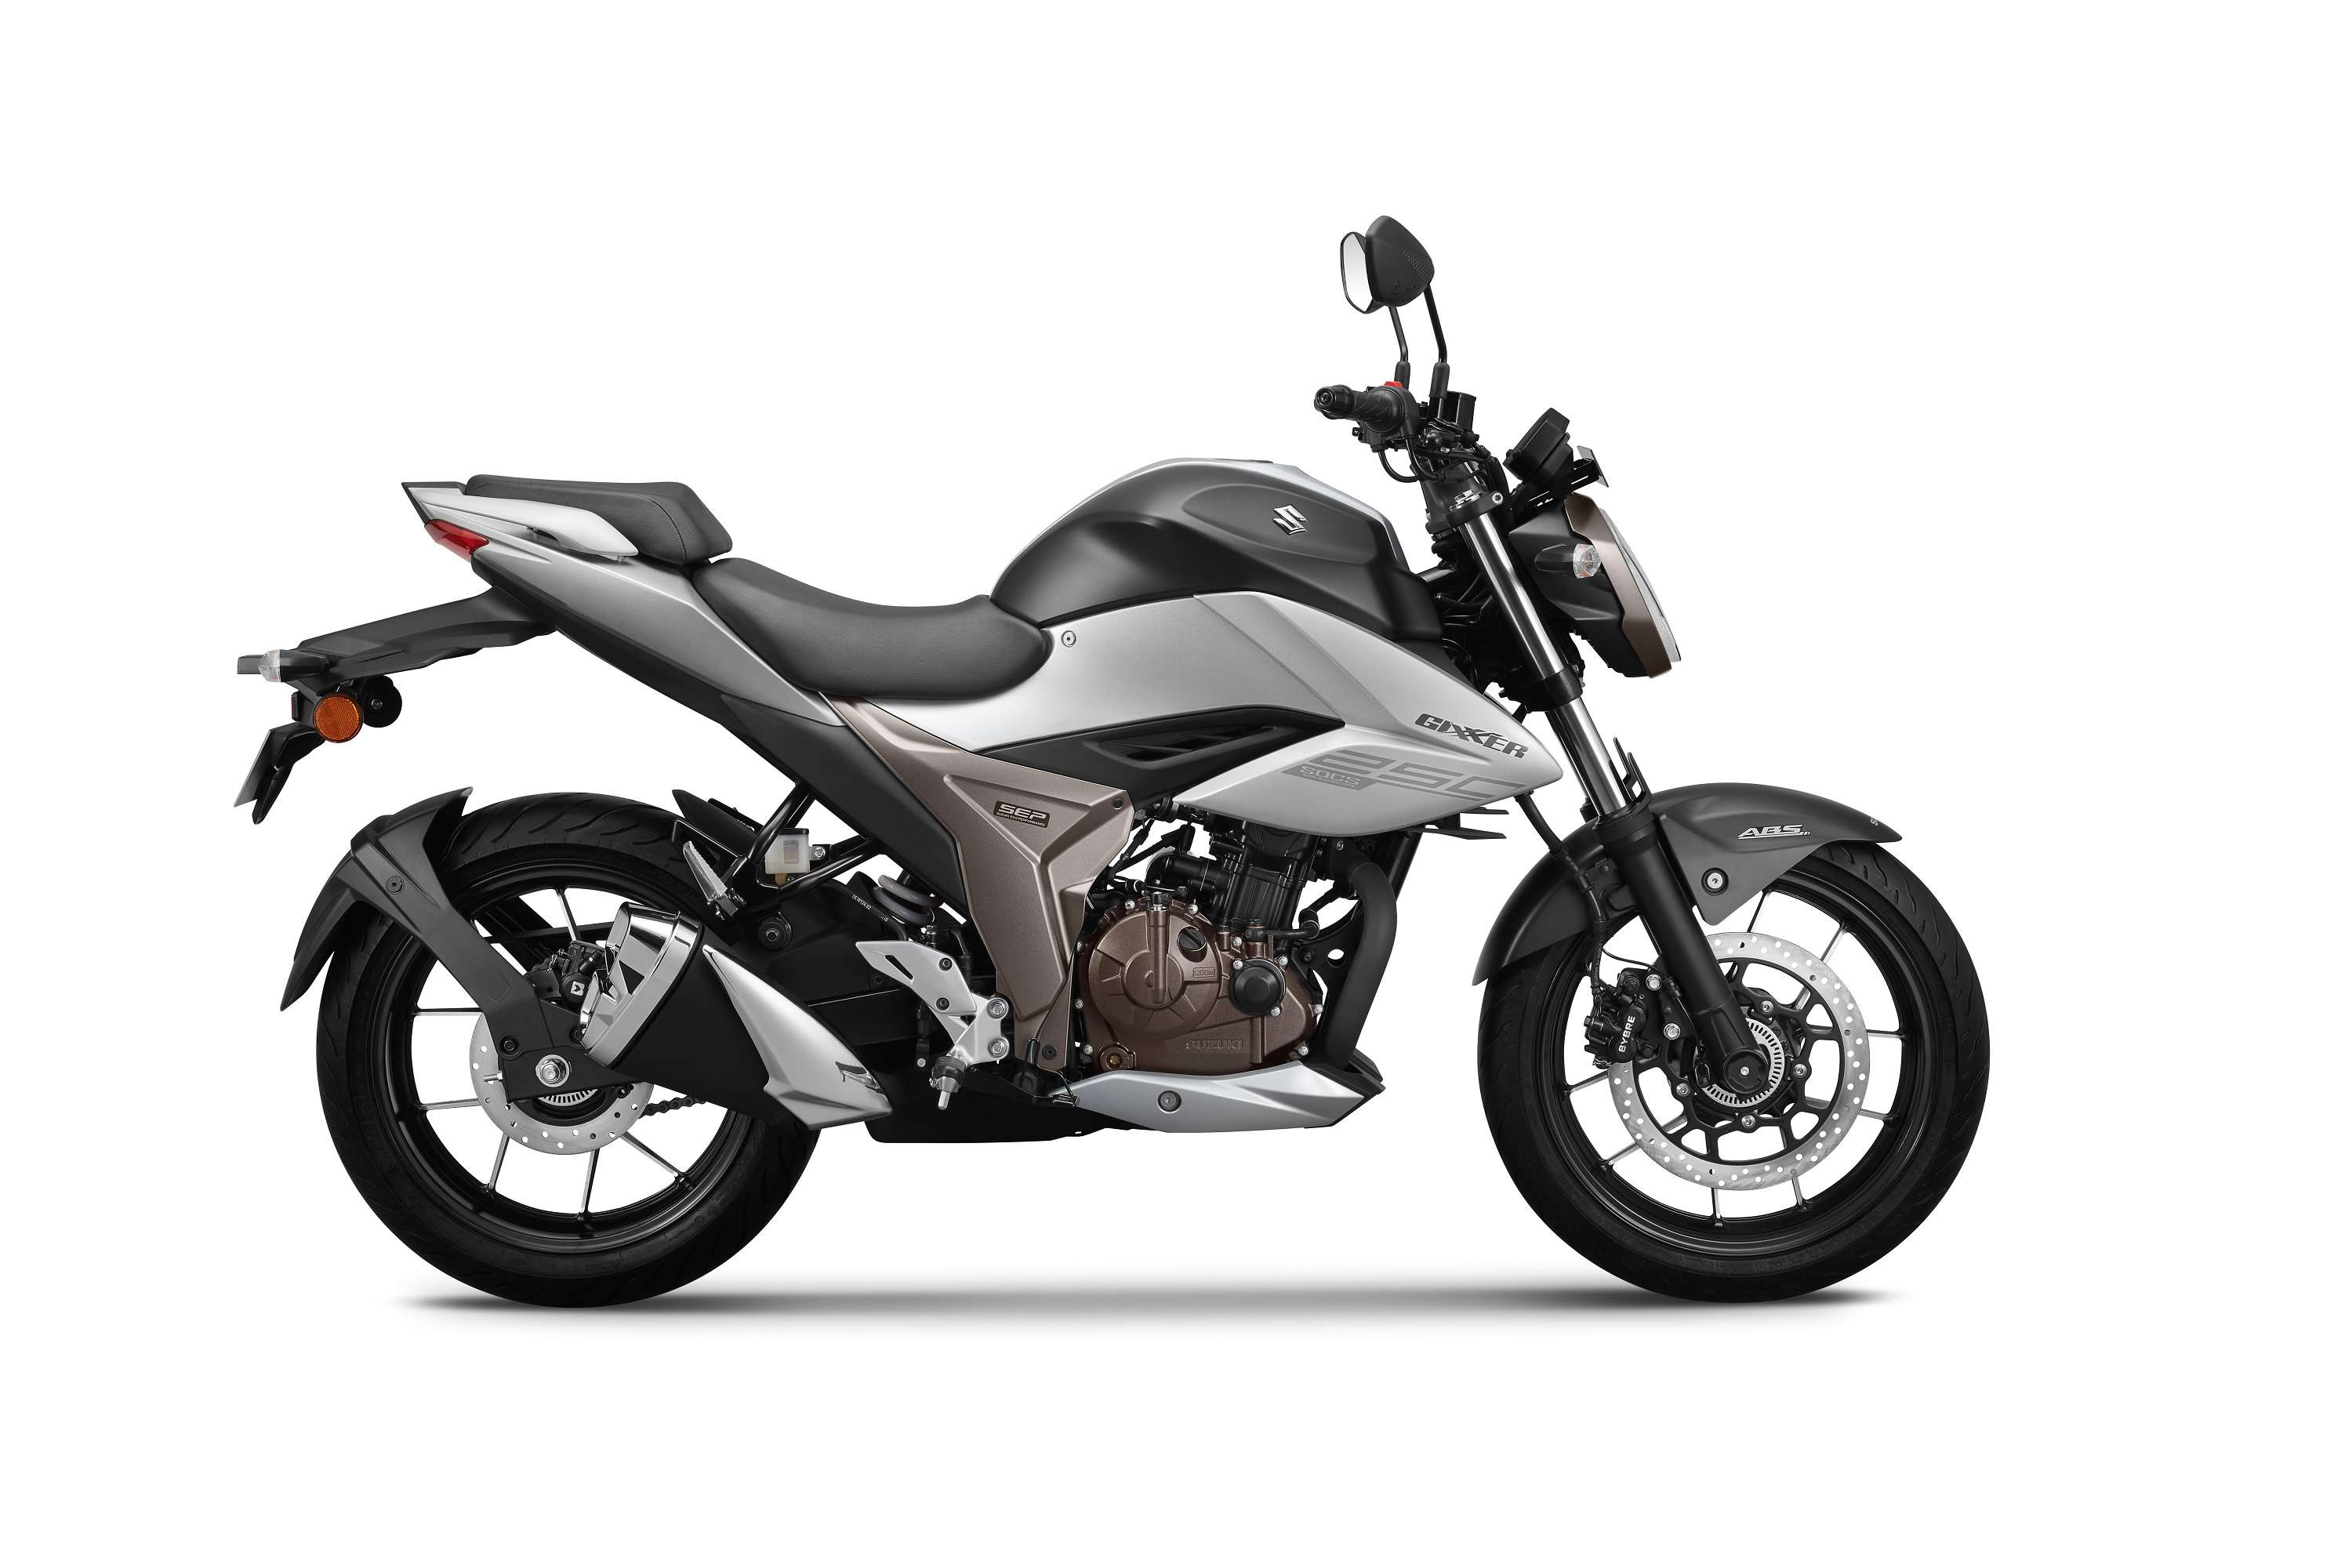 It comes with 249cc, Suzuki Oil Cooling System (SOCS) four-stroke, single-cylinder fuel injection SOHC engine offering refined performance.